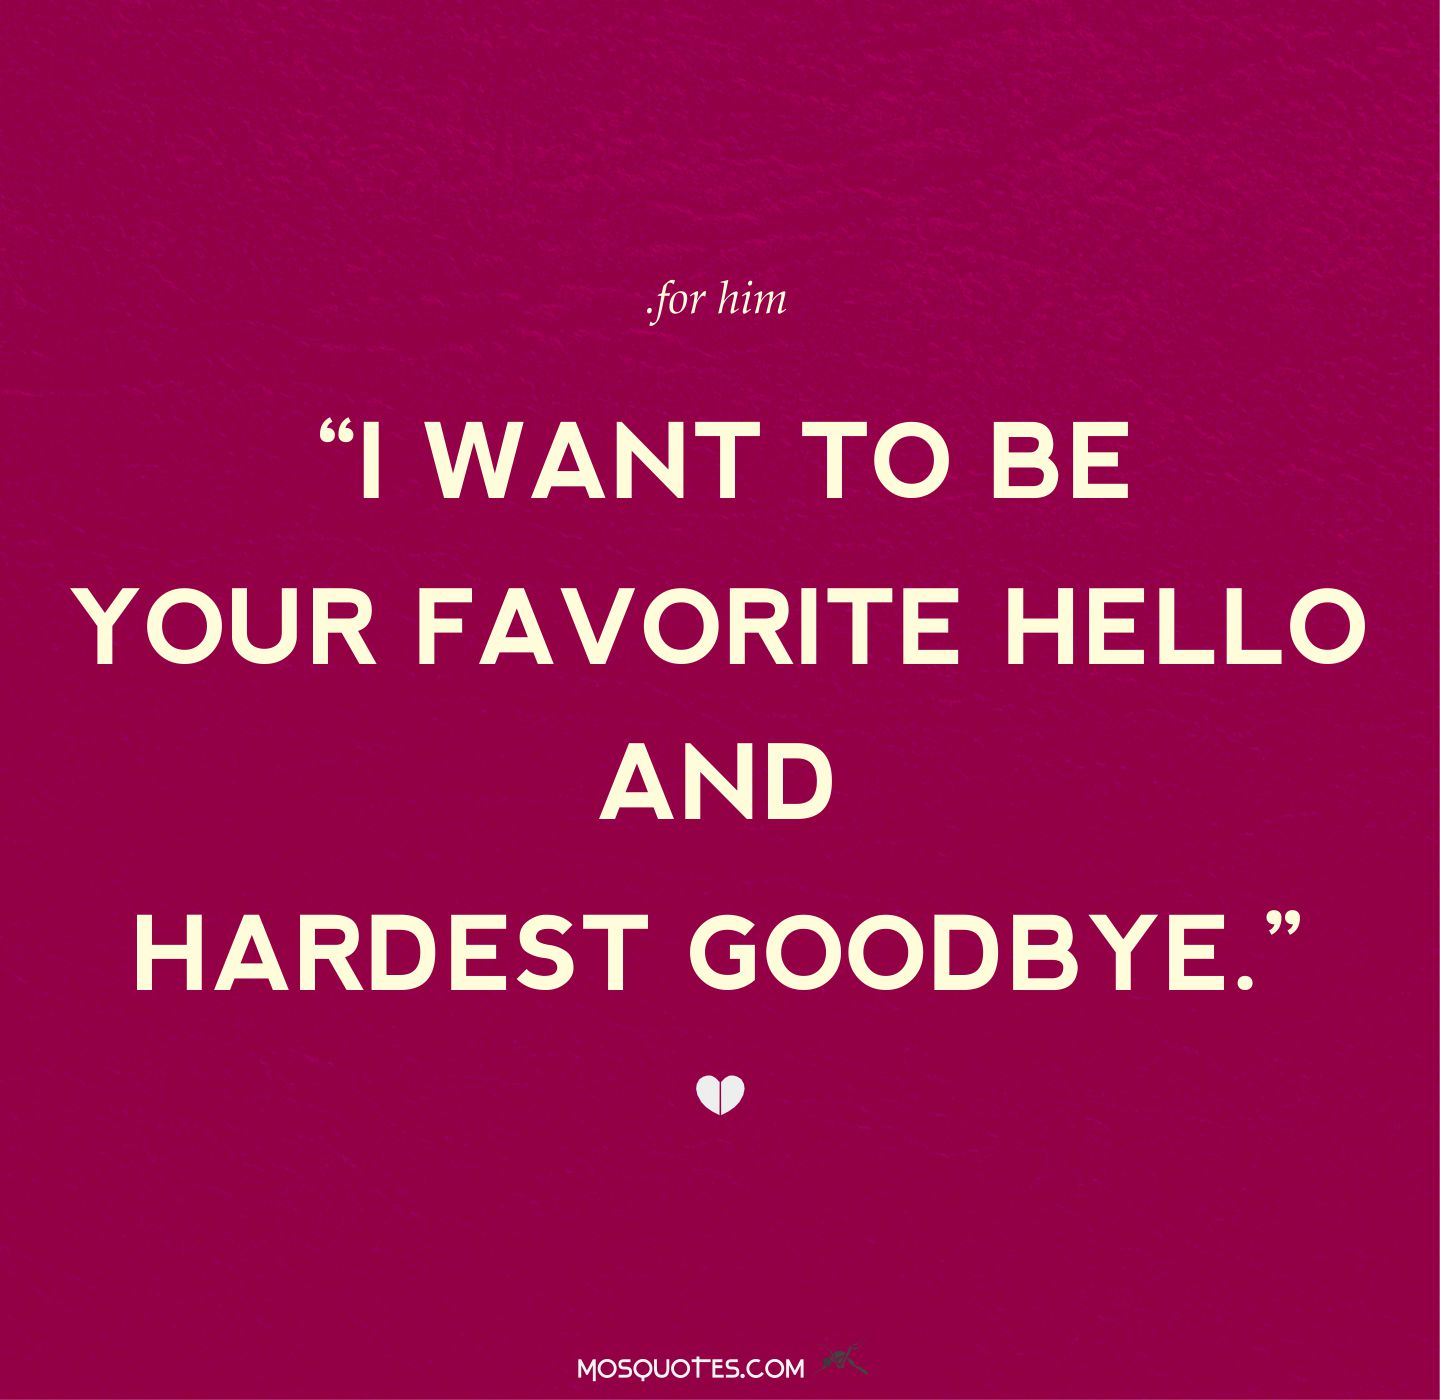 Quotes About Love For Him: Hello Quotes For Him. QuotesGram